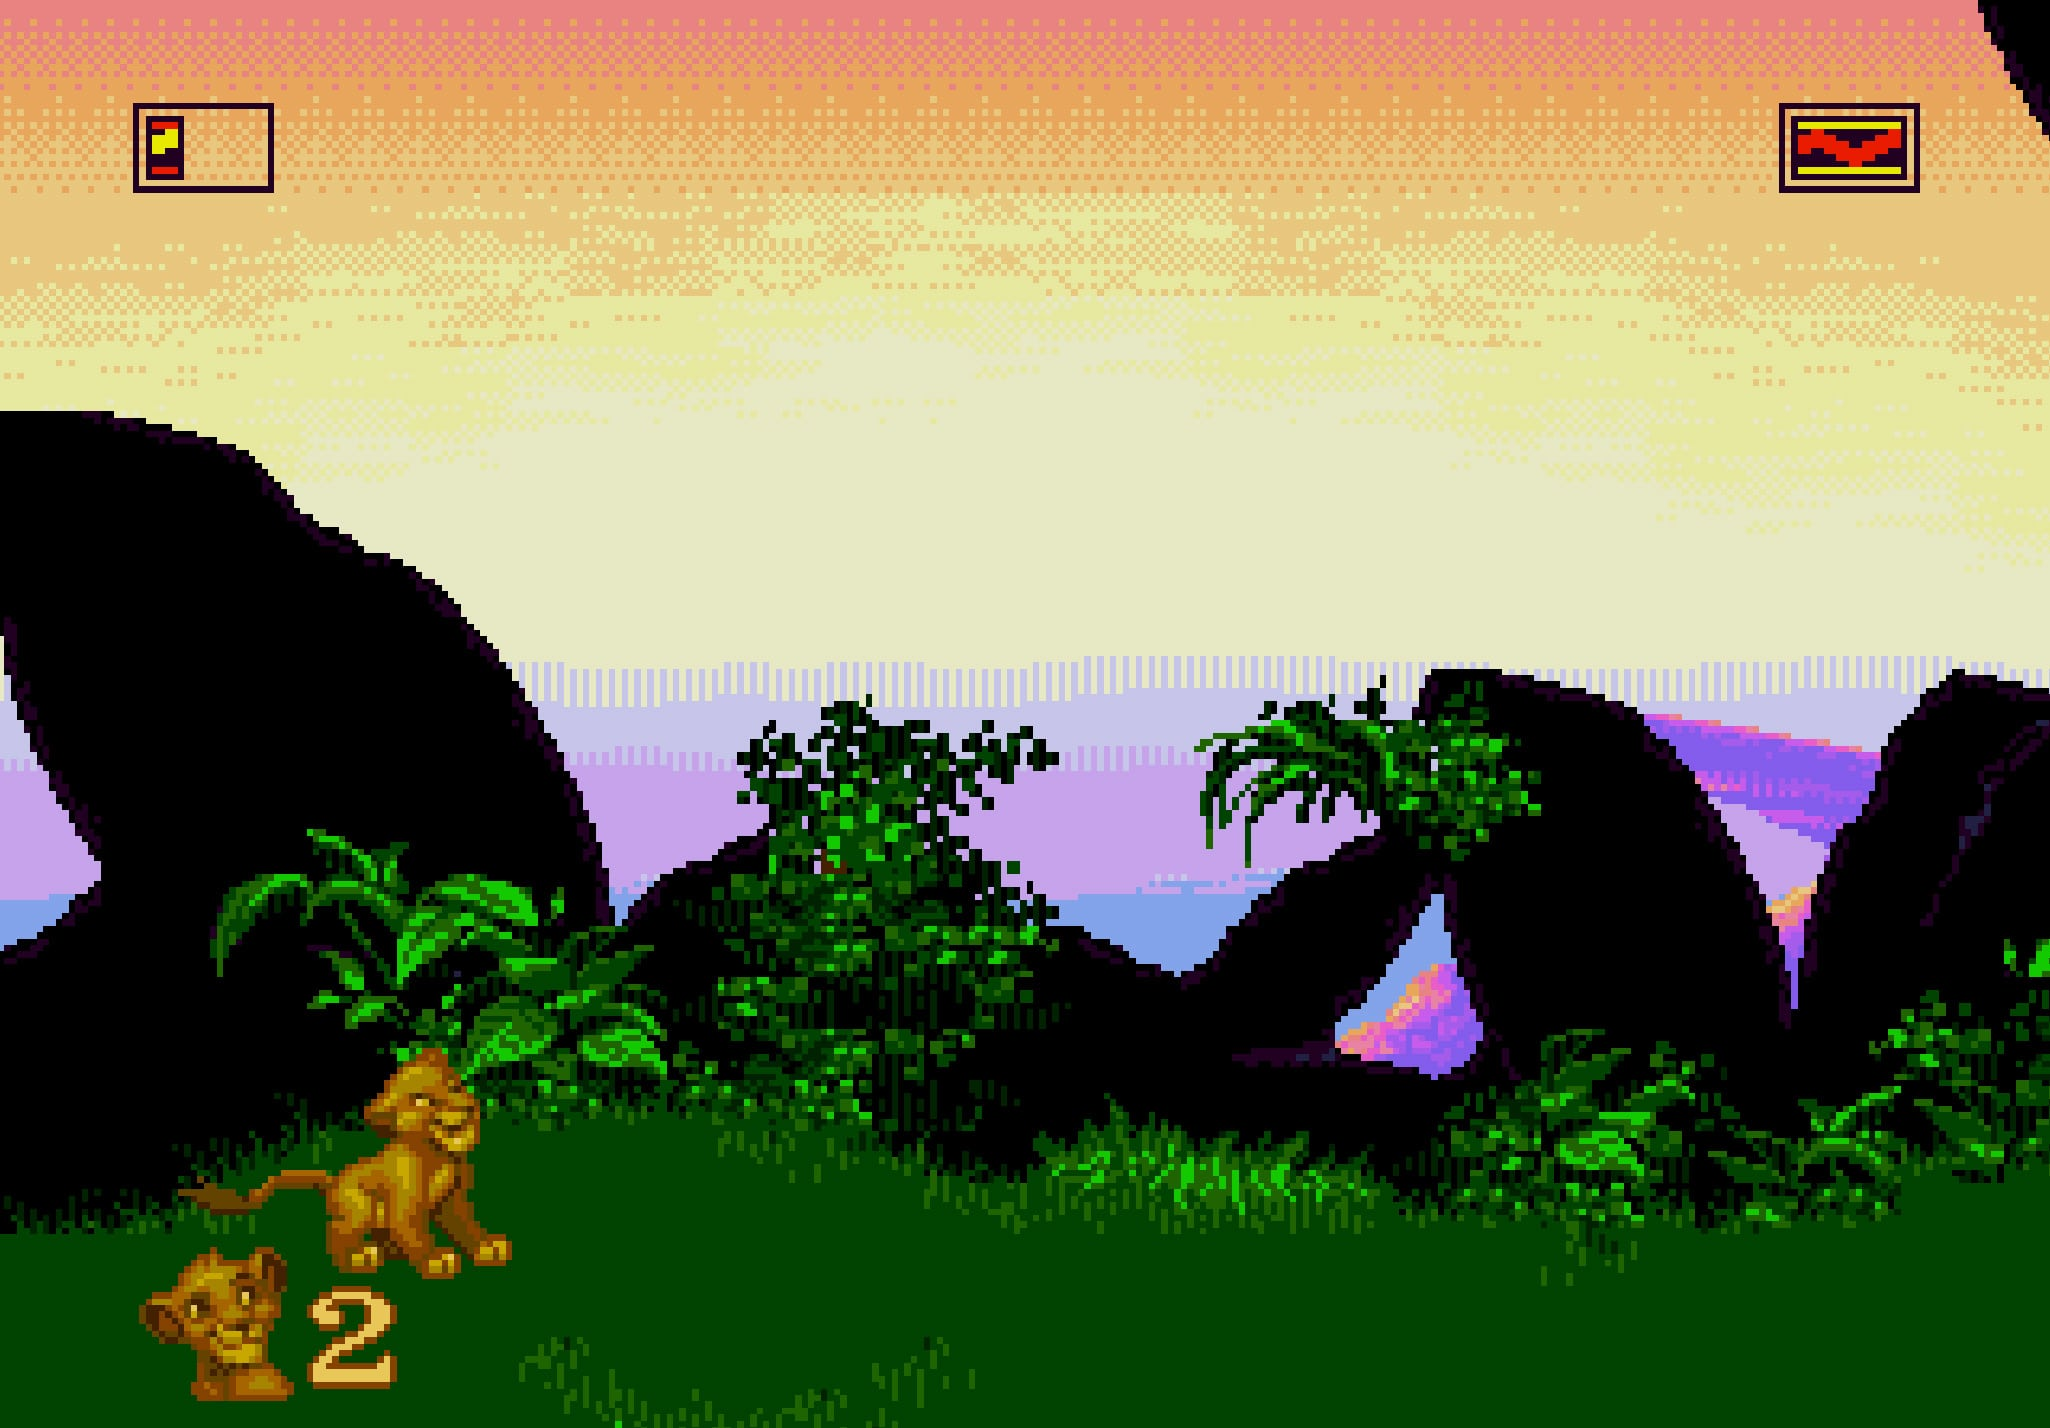 The Lion King Video Game Screenshot